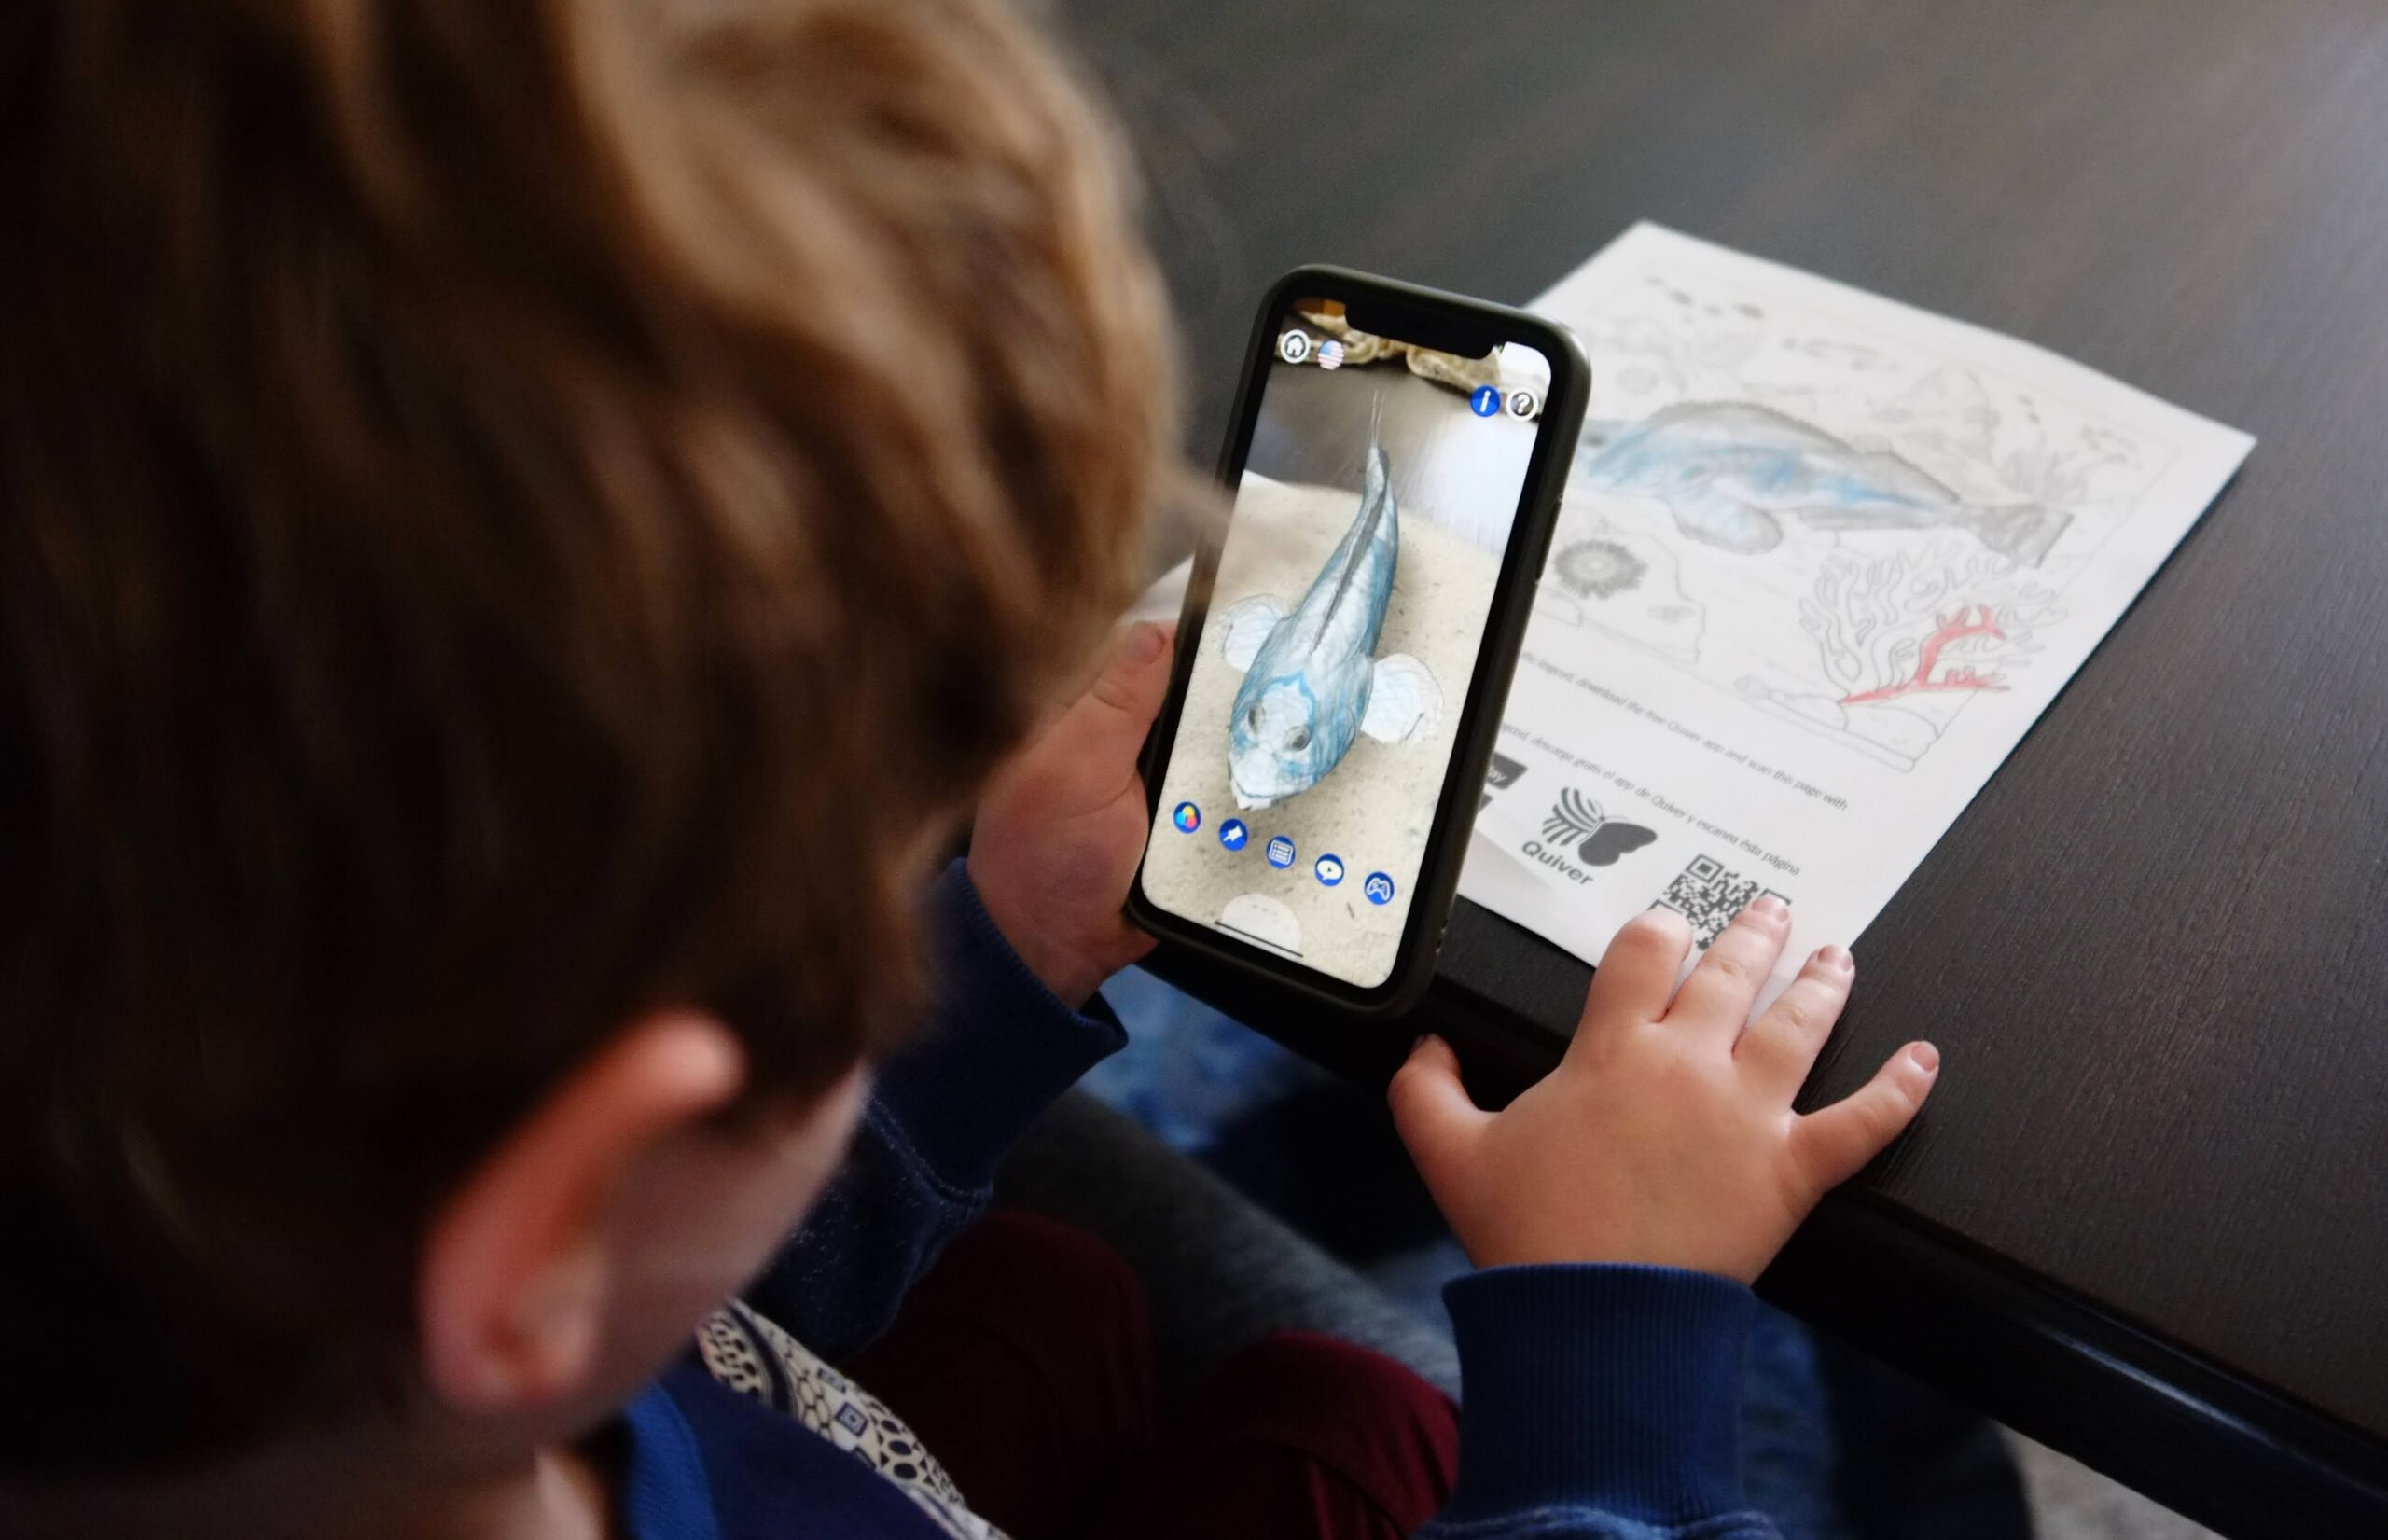 Bring MPAs to life with bilingual coloring and activity books featuring augmented reality experiences